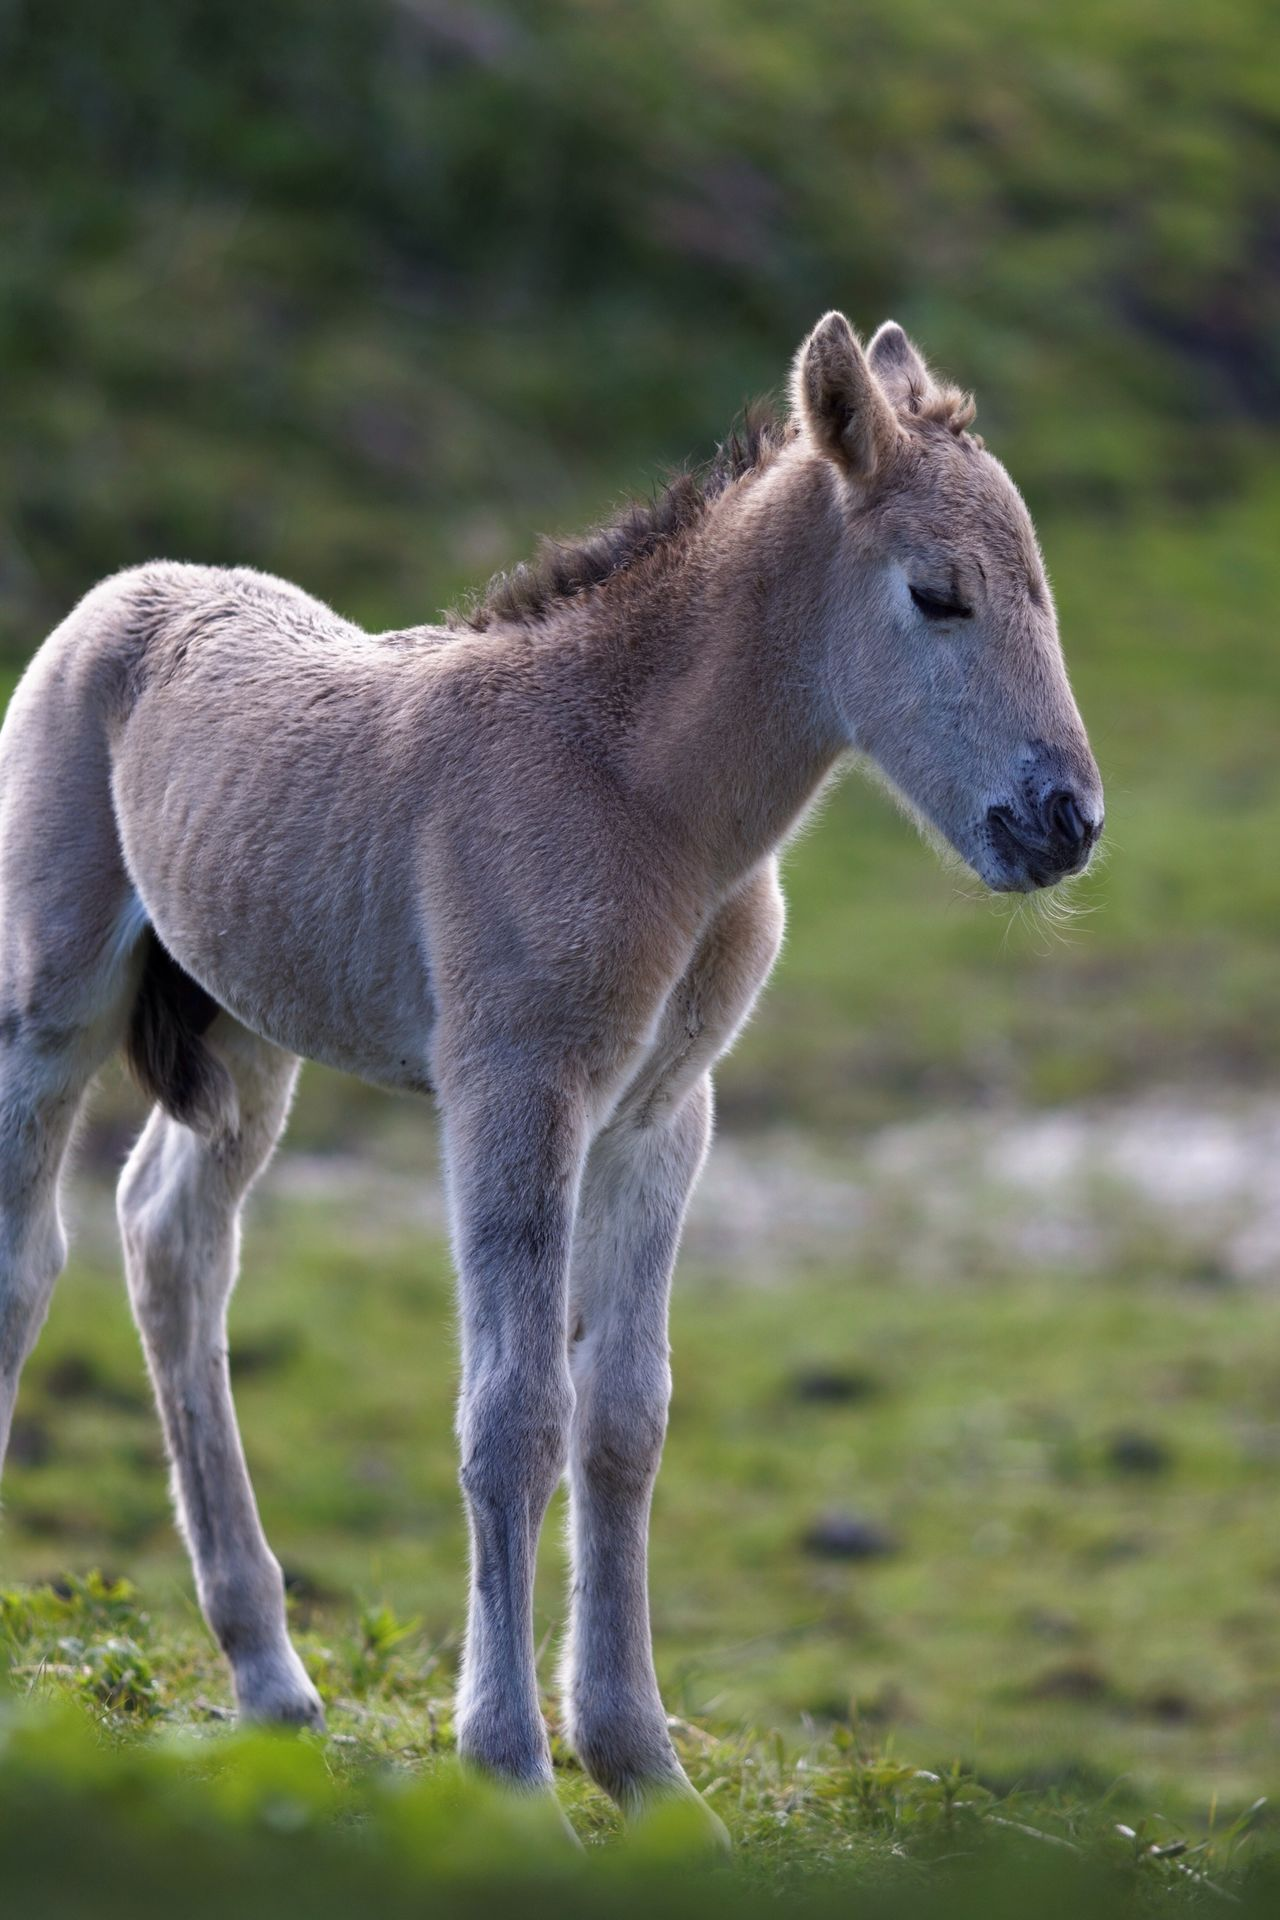 Newly Born Boy Konik Horse Animal Themes Mammal One Animal Field Animals In The Wild Day No People Domestic Animals Nature Standing Full Length Animal Wildlife Grass Outdoors For Bokeh's Sake